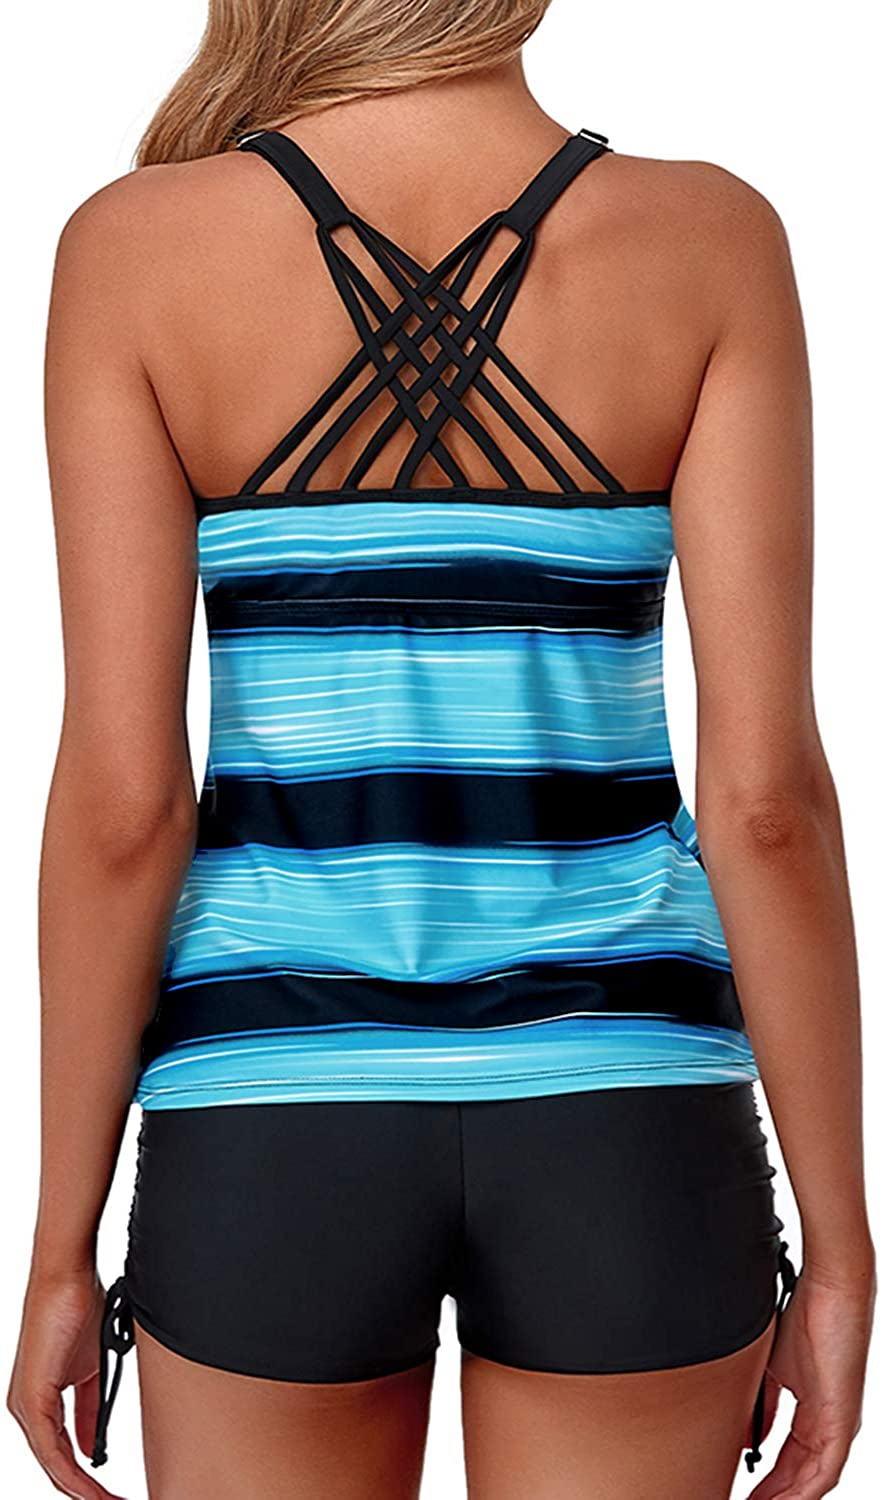 Yonique Womens Tankini Swimsuits Athletic Two Piece Tummy Control Bathing Suits with Shorts Modest Tank Tops